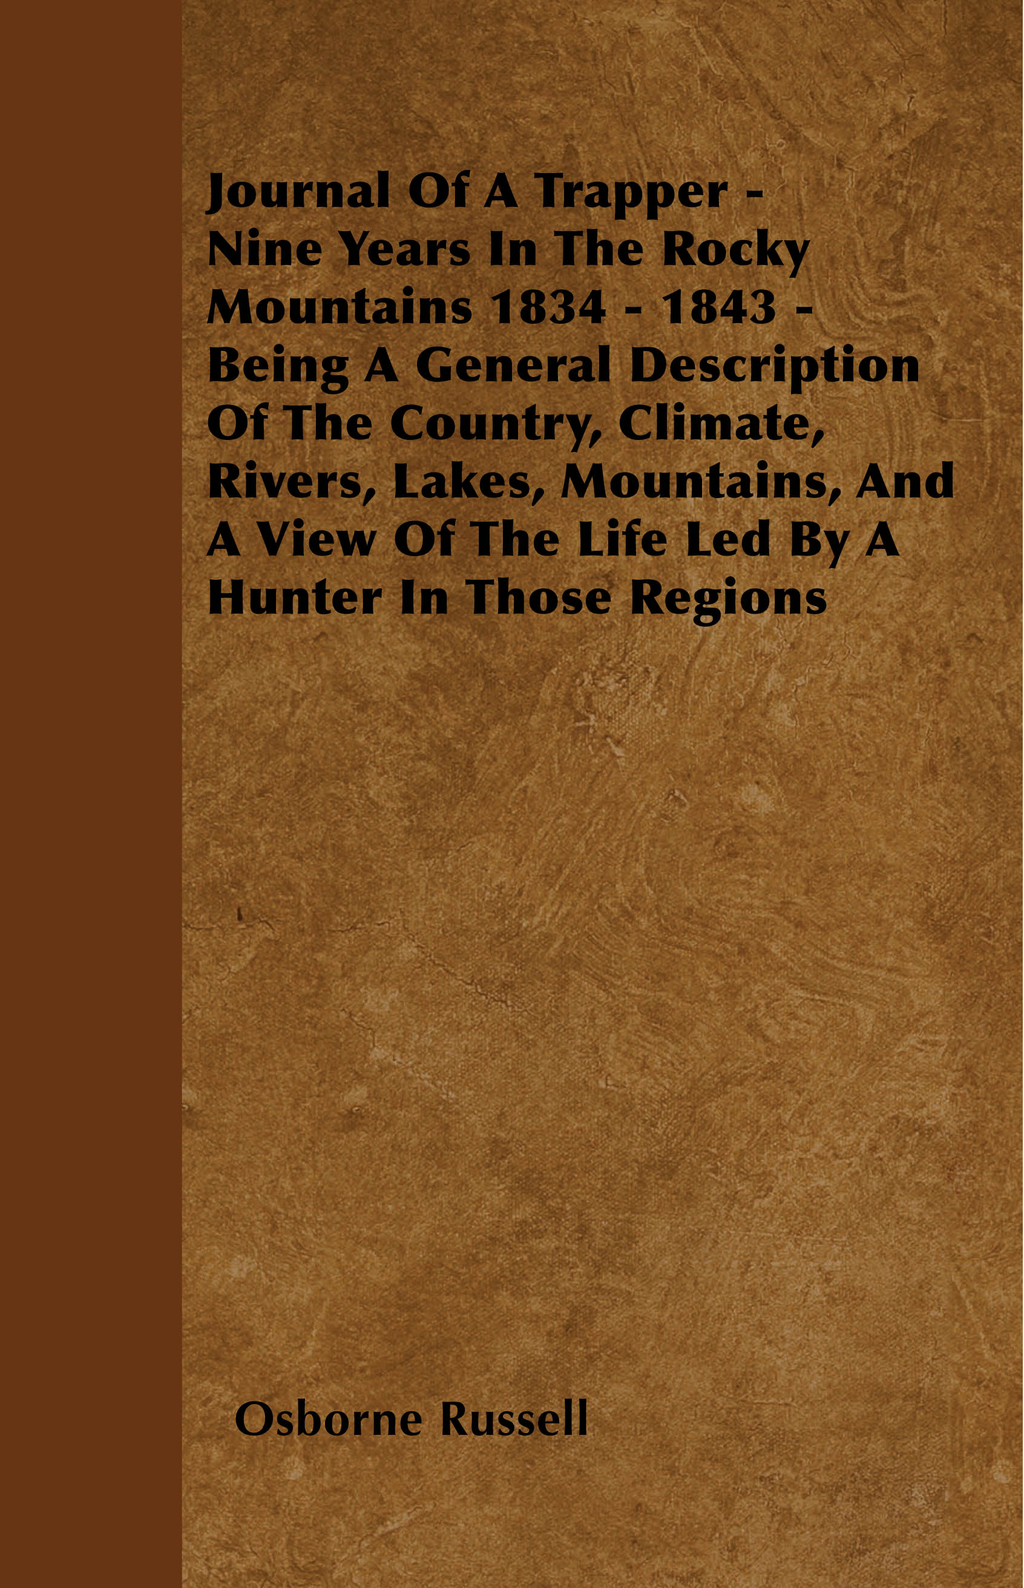 Journal Of A Trapper - Nine Years In The Rocky Mountains 1834 - 1843 - Being A General Description Of The Country, Climate, Rivers, Lakes, Mountains, And A View Of The Life Led By A Hunter In Those Regions